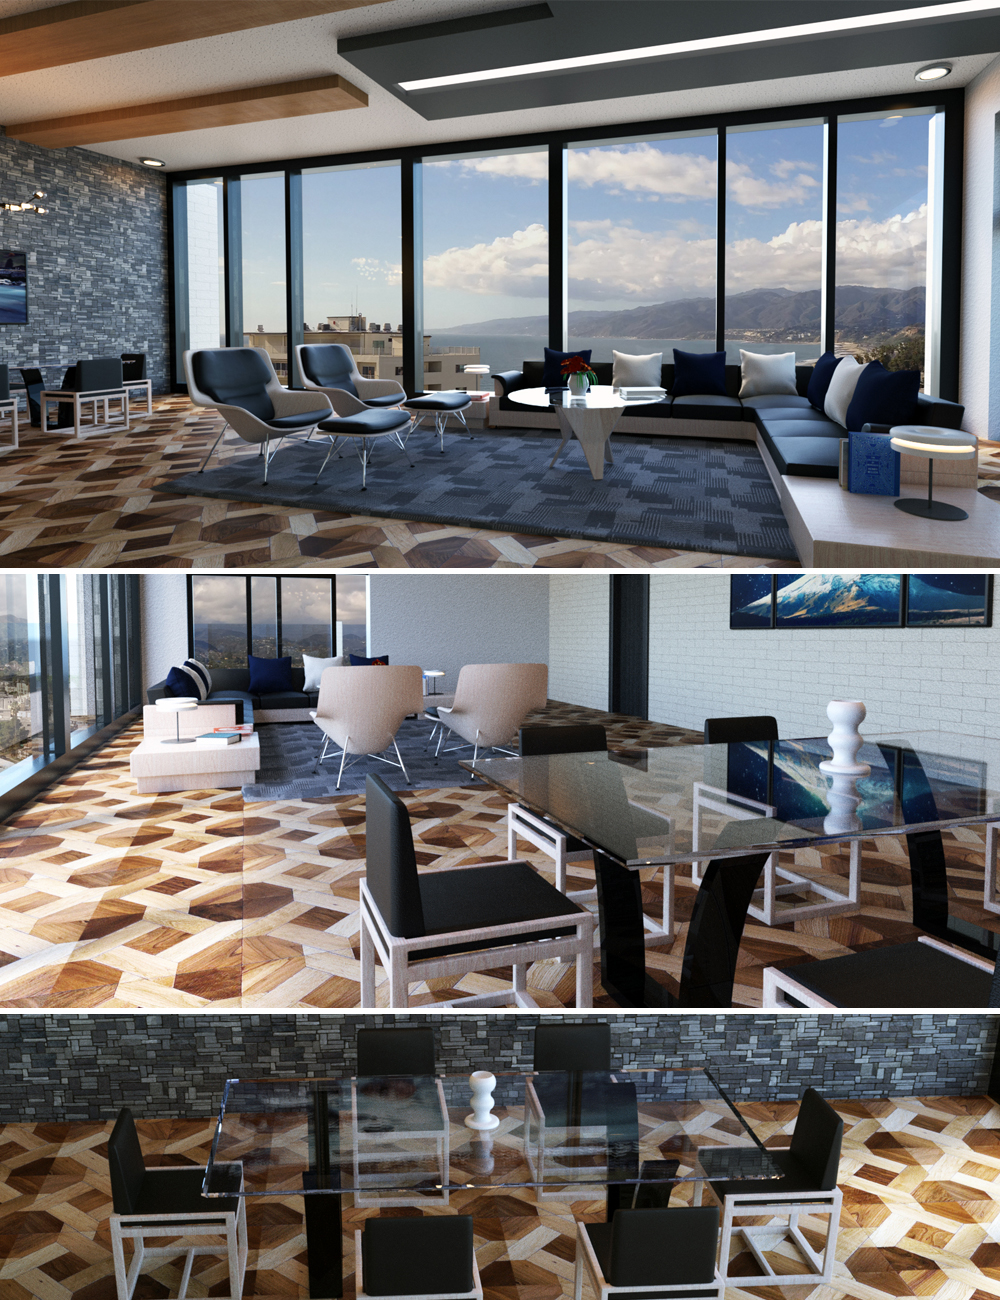 Penthouse Living Room by: Tesla3dCorp, 3D Models by Daz 3D